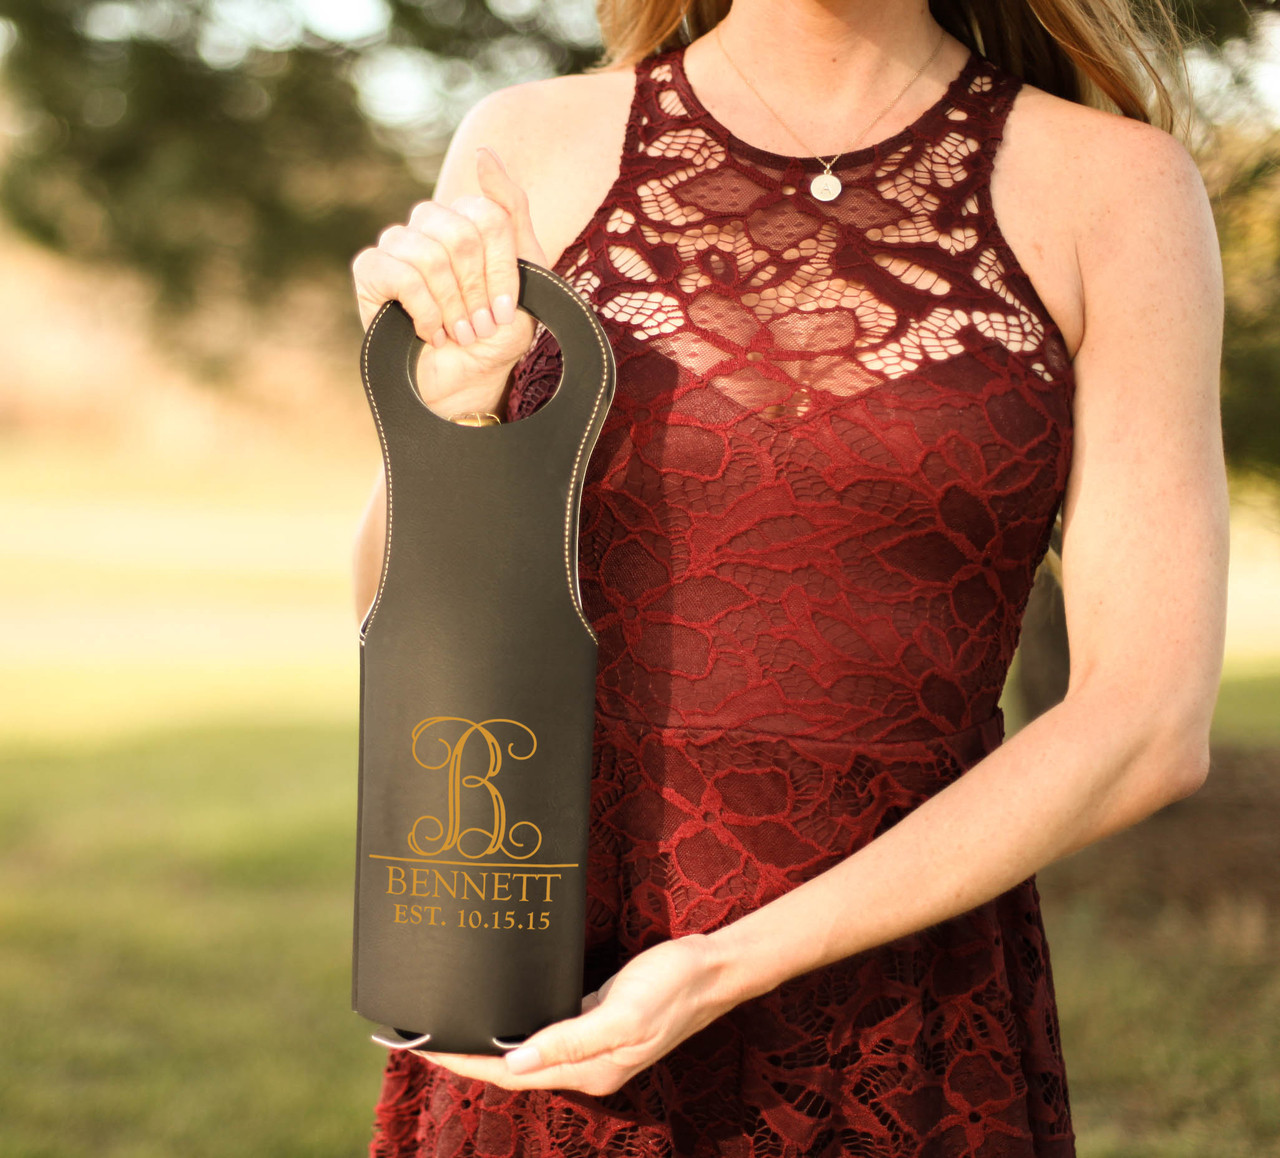 Leather Bottle Tote Bag - Vine Initial